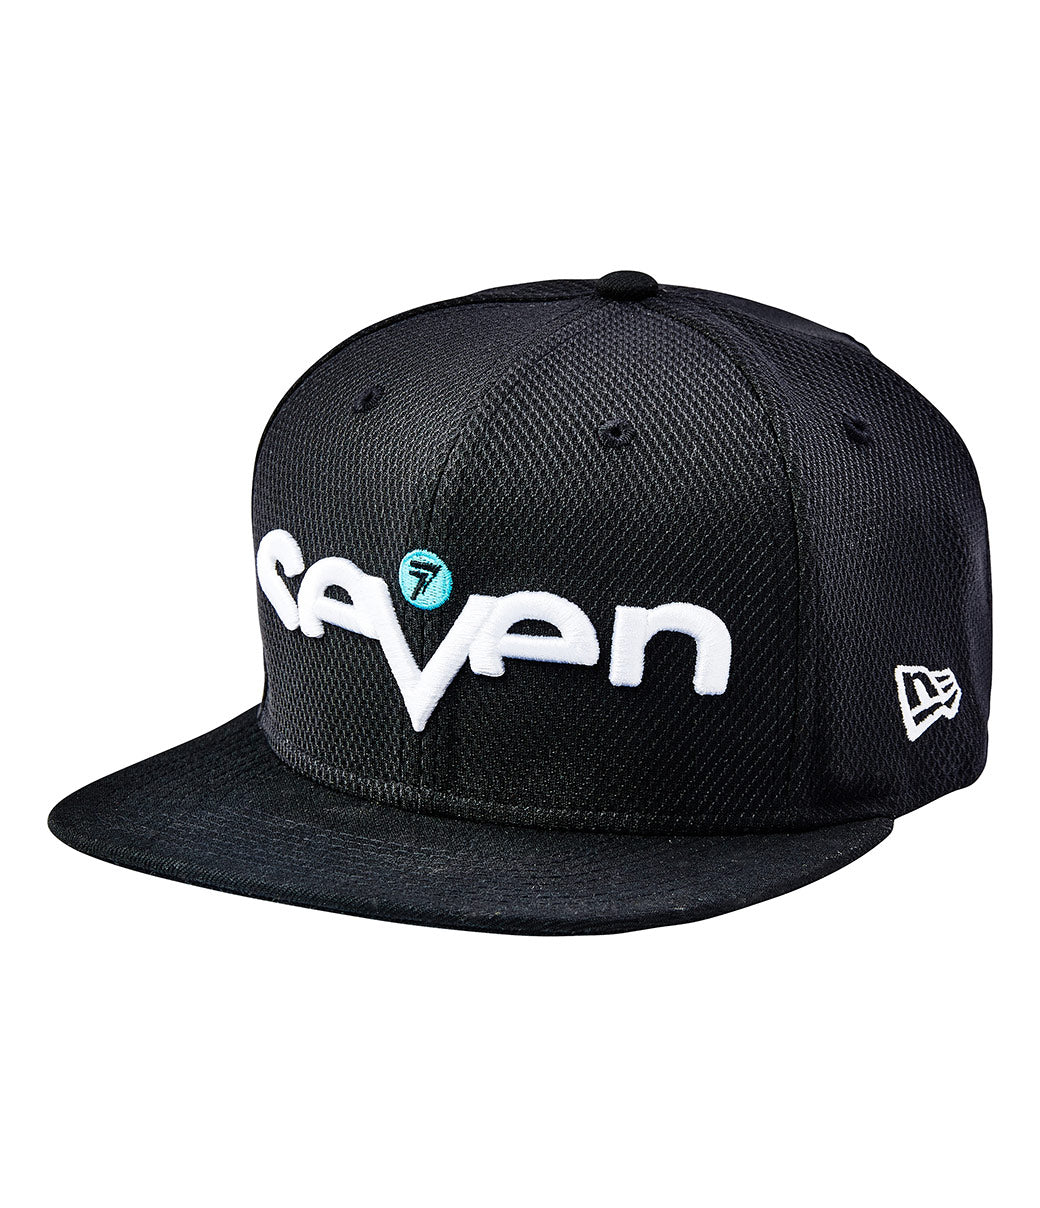 Youth Brand Hat - Black/Aqua